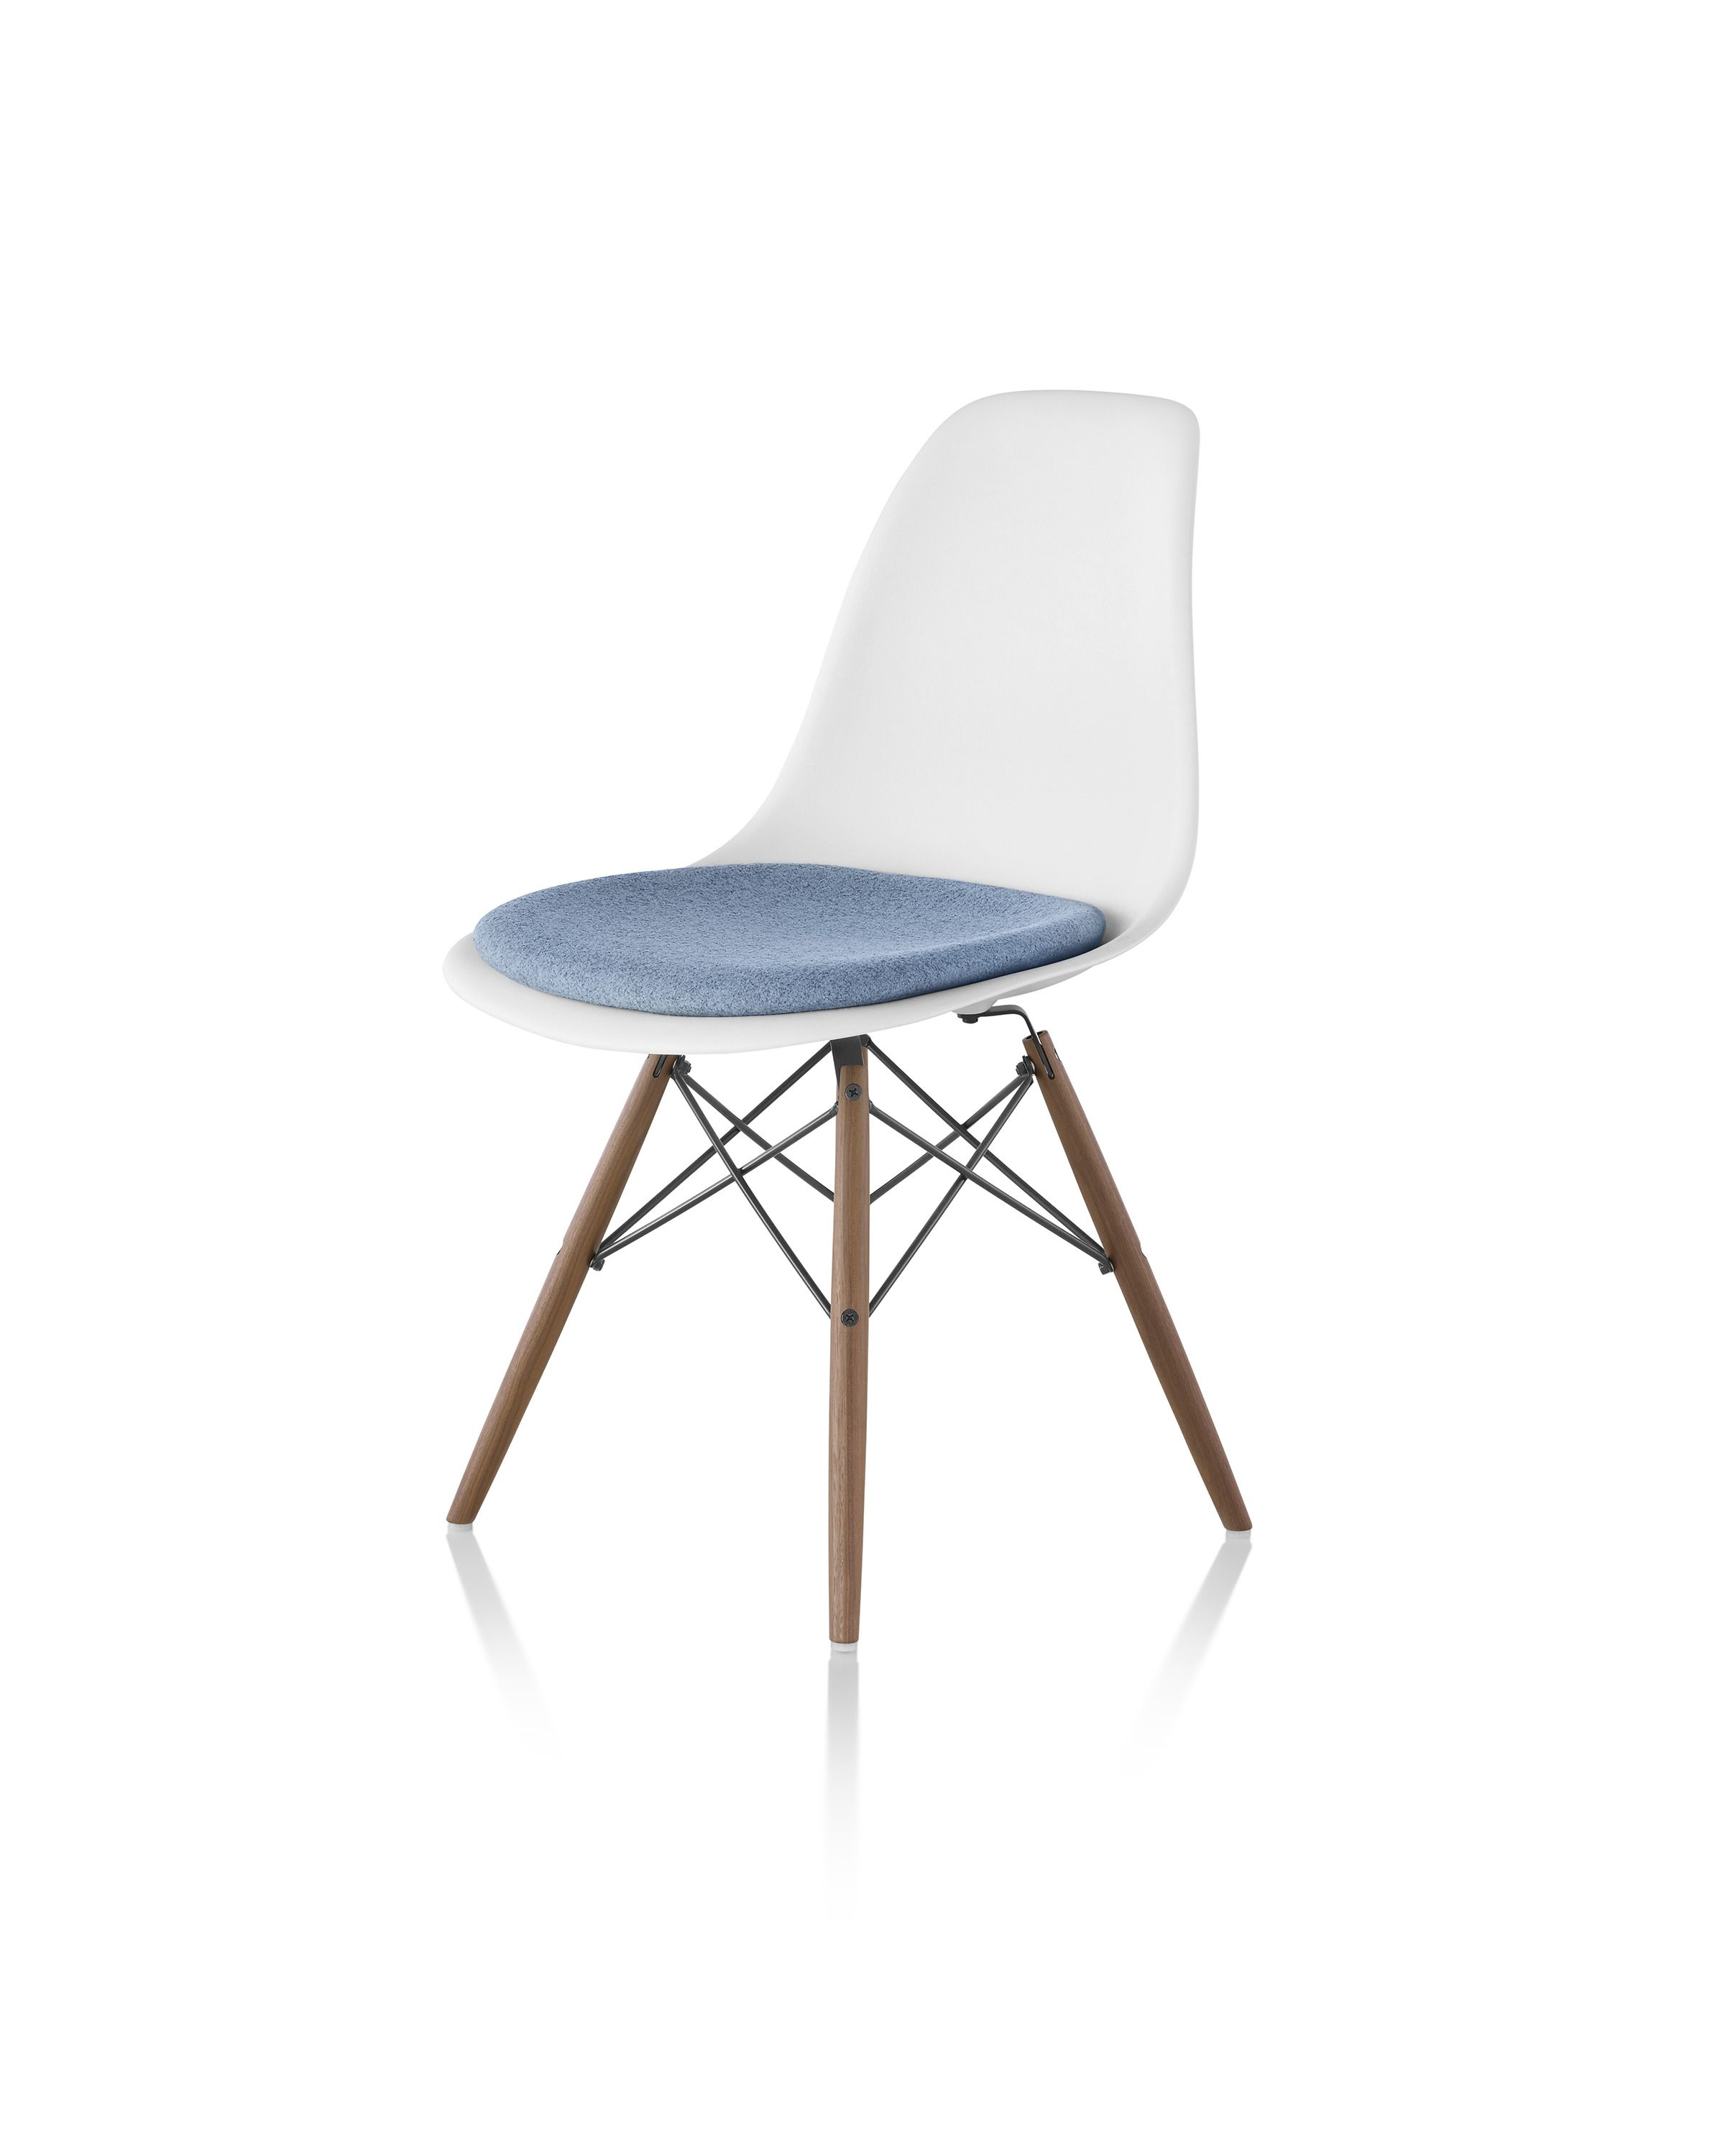 Eames Molded Plastic Chairs - Guest Chairs - Herman Miller  sc 1 st  Pinterest & Eames Molded Plastic Chairs - Guest Chairs - Herman Miller ...